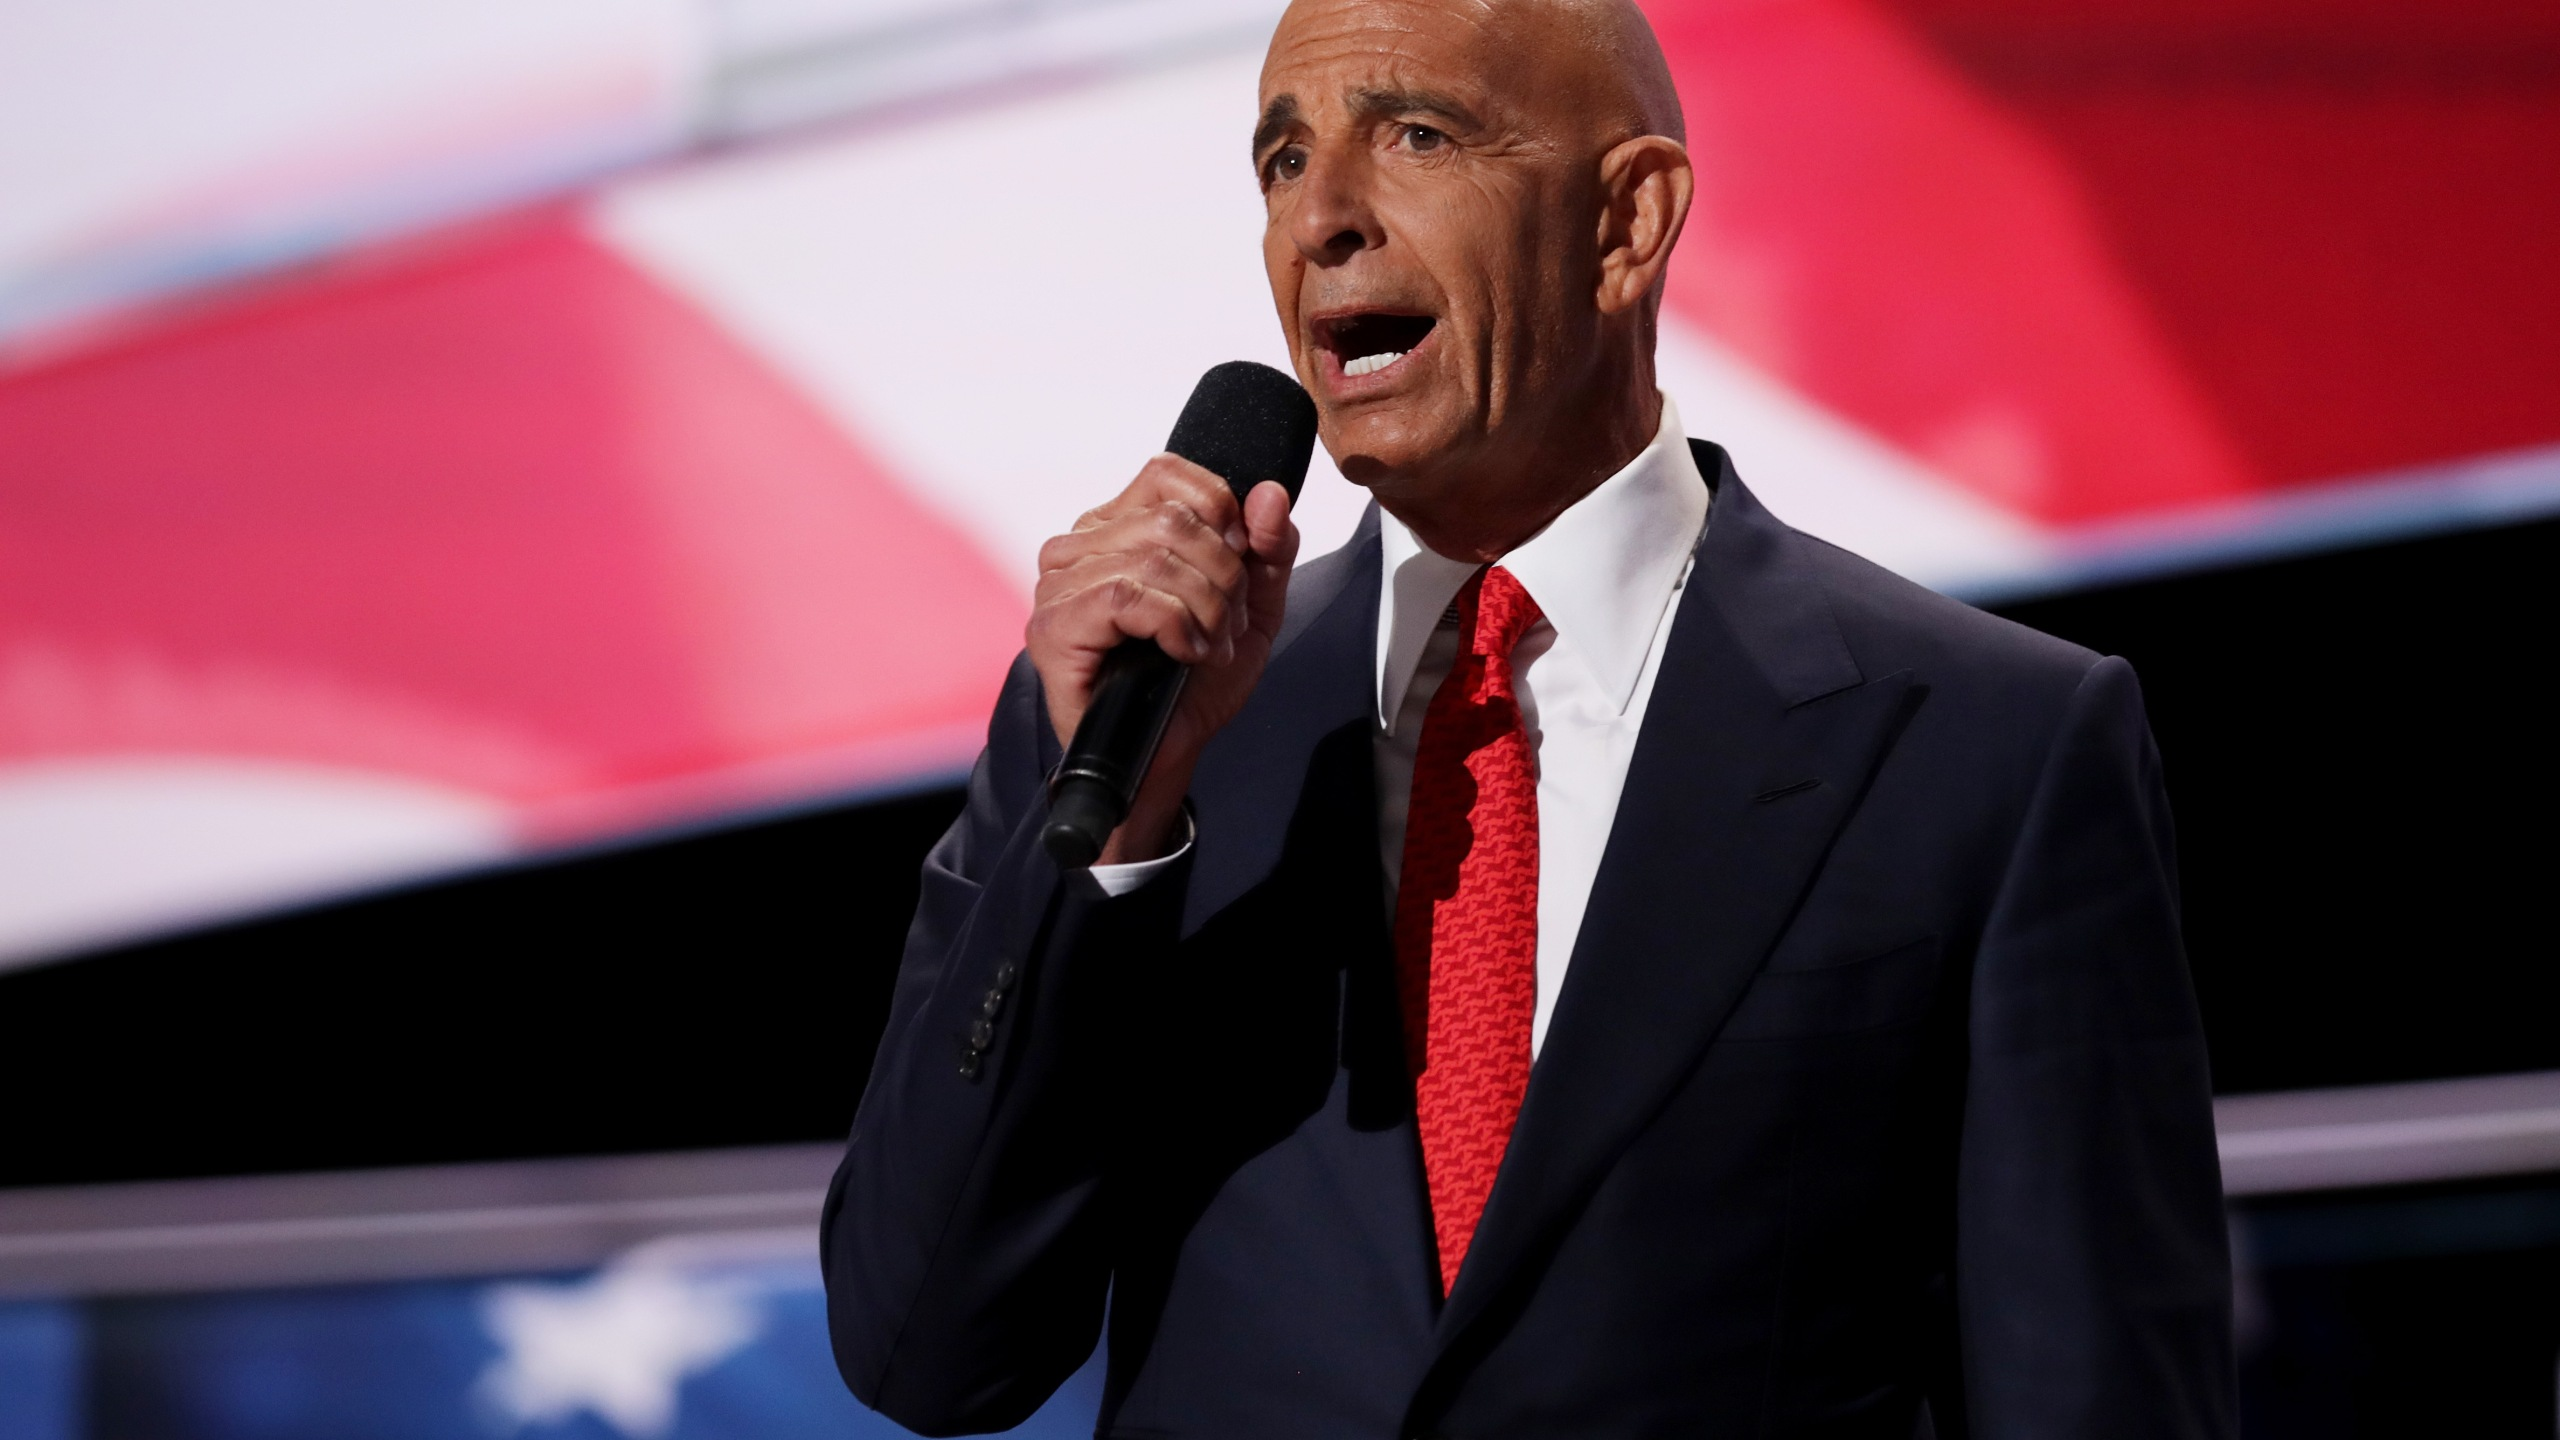 Tom Barrack, former Deputy Interior Undersecretary in the Reagan administration, delivers a speech on the fourth day of the Republican National Convention in Cleveland on July 21, 2016. (Credit: Chip Somodevilla/Getty Images)